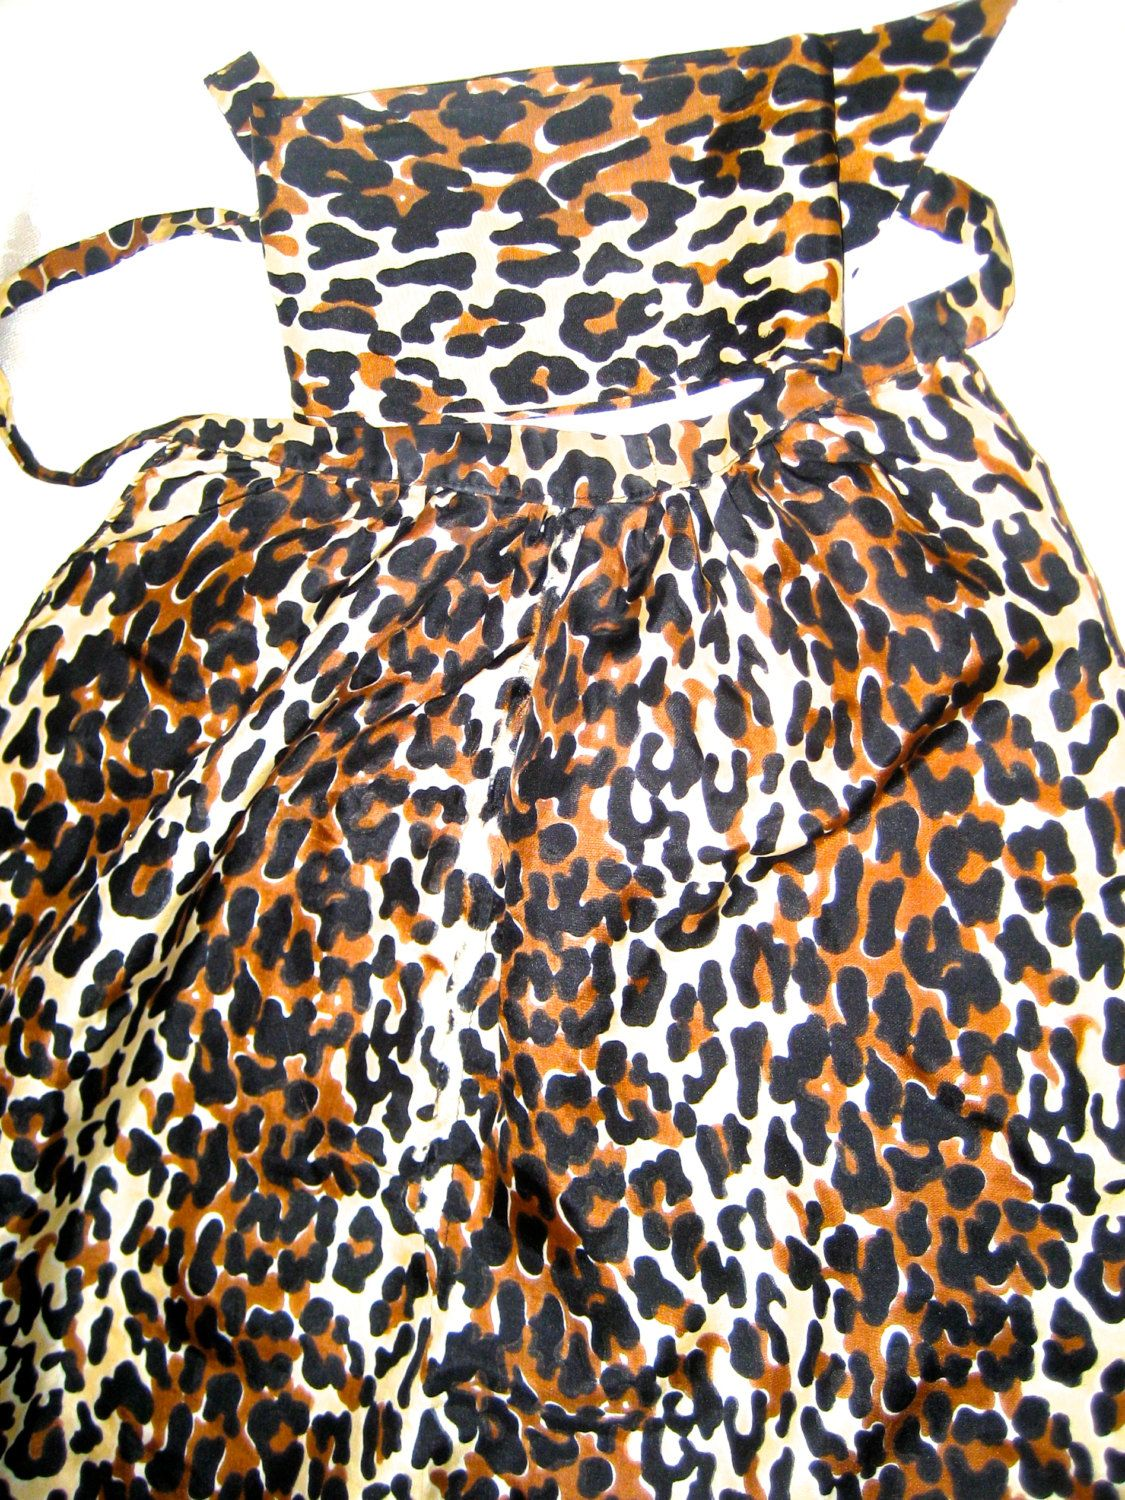 Vintage 40s 50s leopard print silky halter top with neck scarf Pin up Rockabilly by sweetalicelovesyou on Etsy